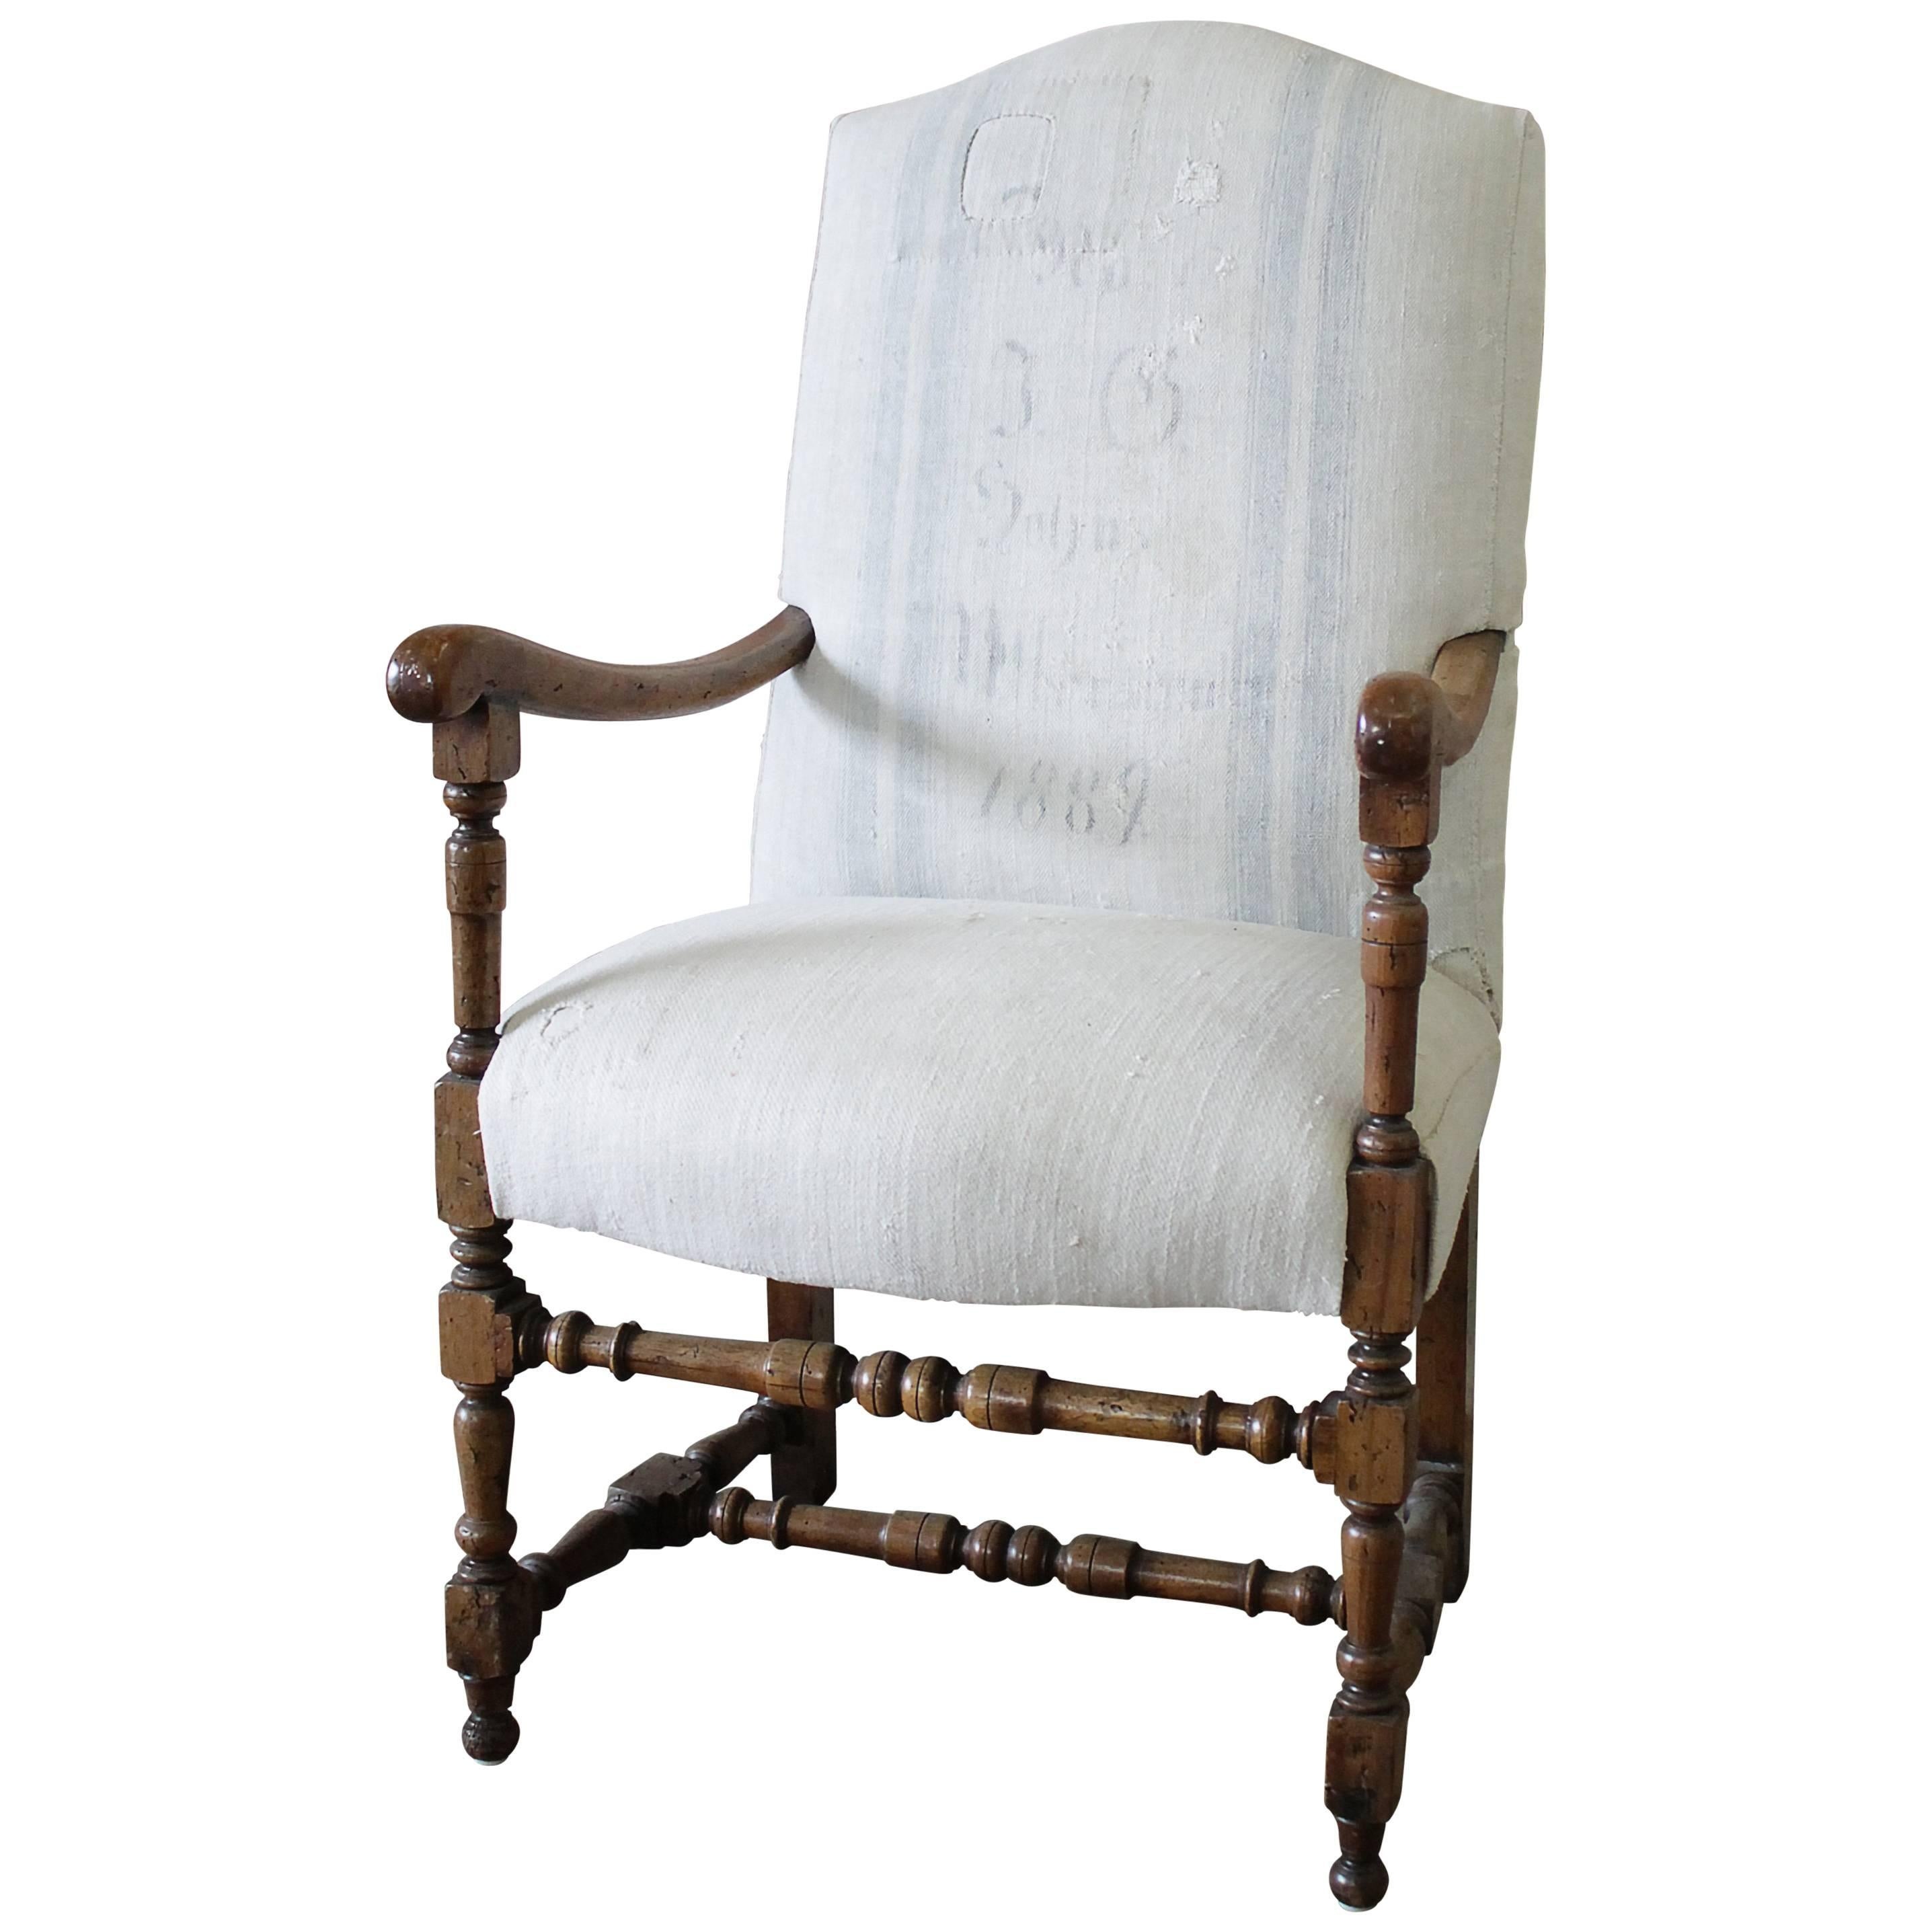 Grain Sack Chair Antique Accent Chair Upholstered In Antique Swedish Grainsack